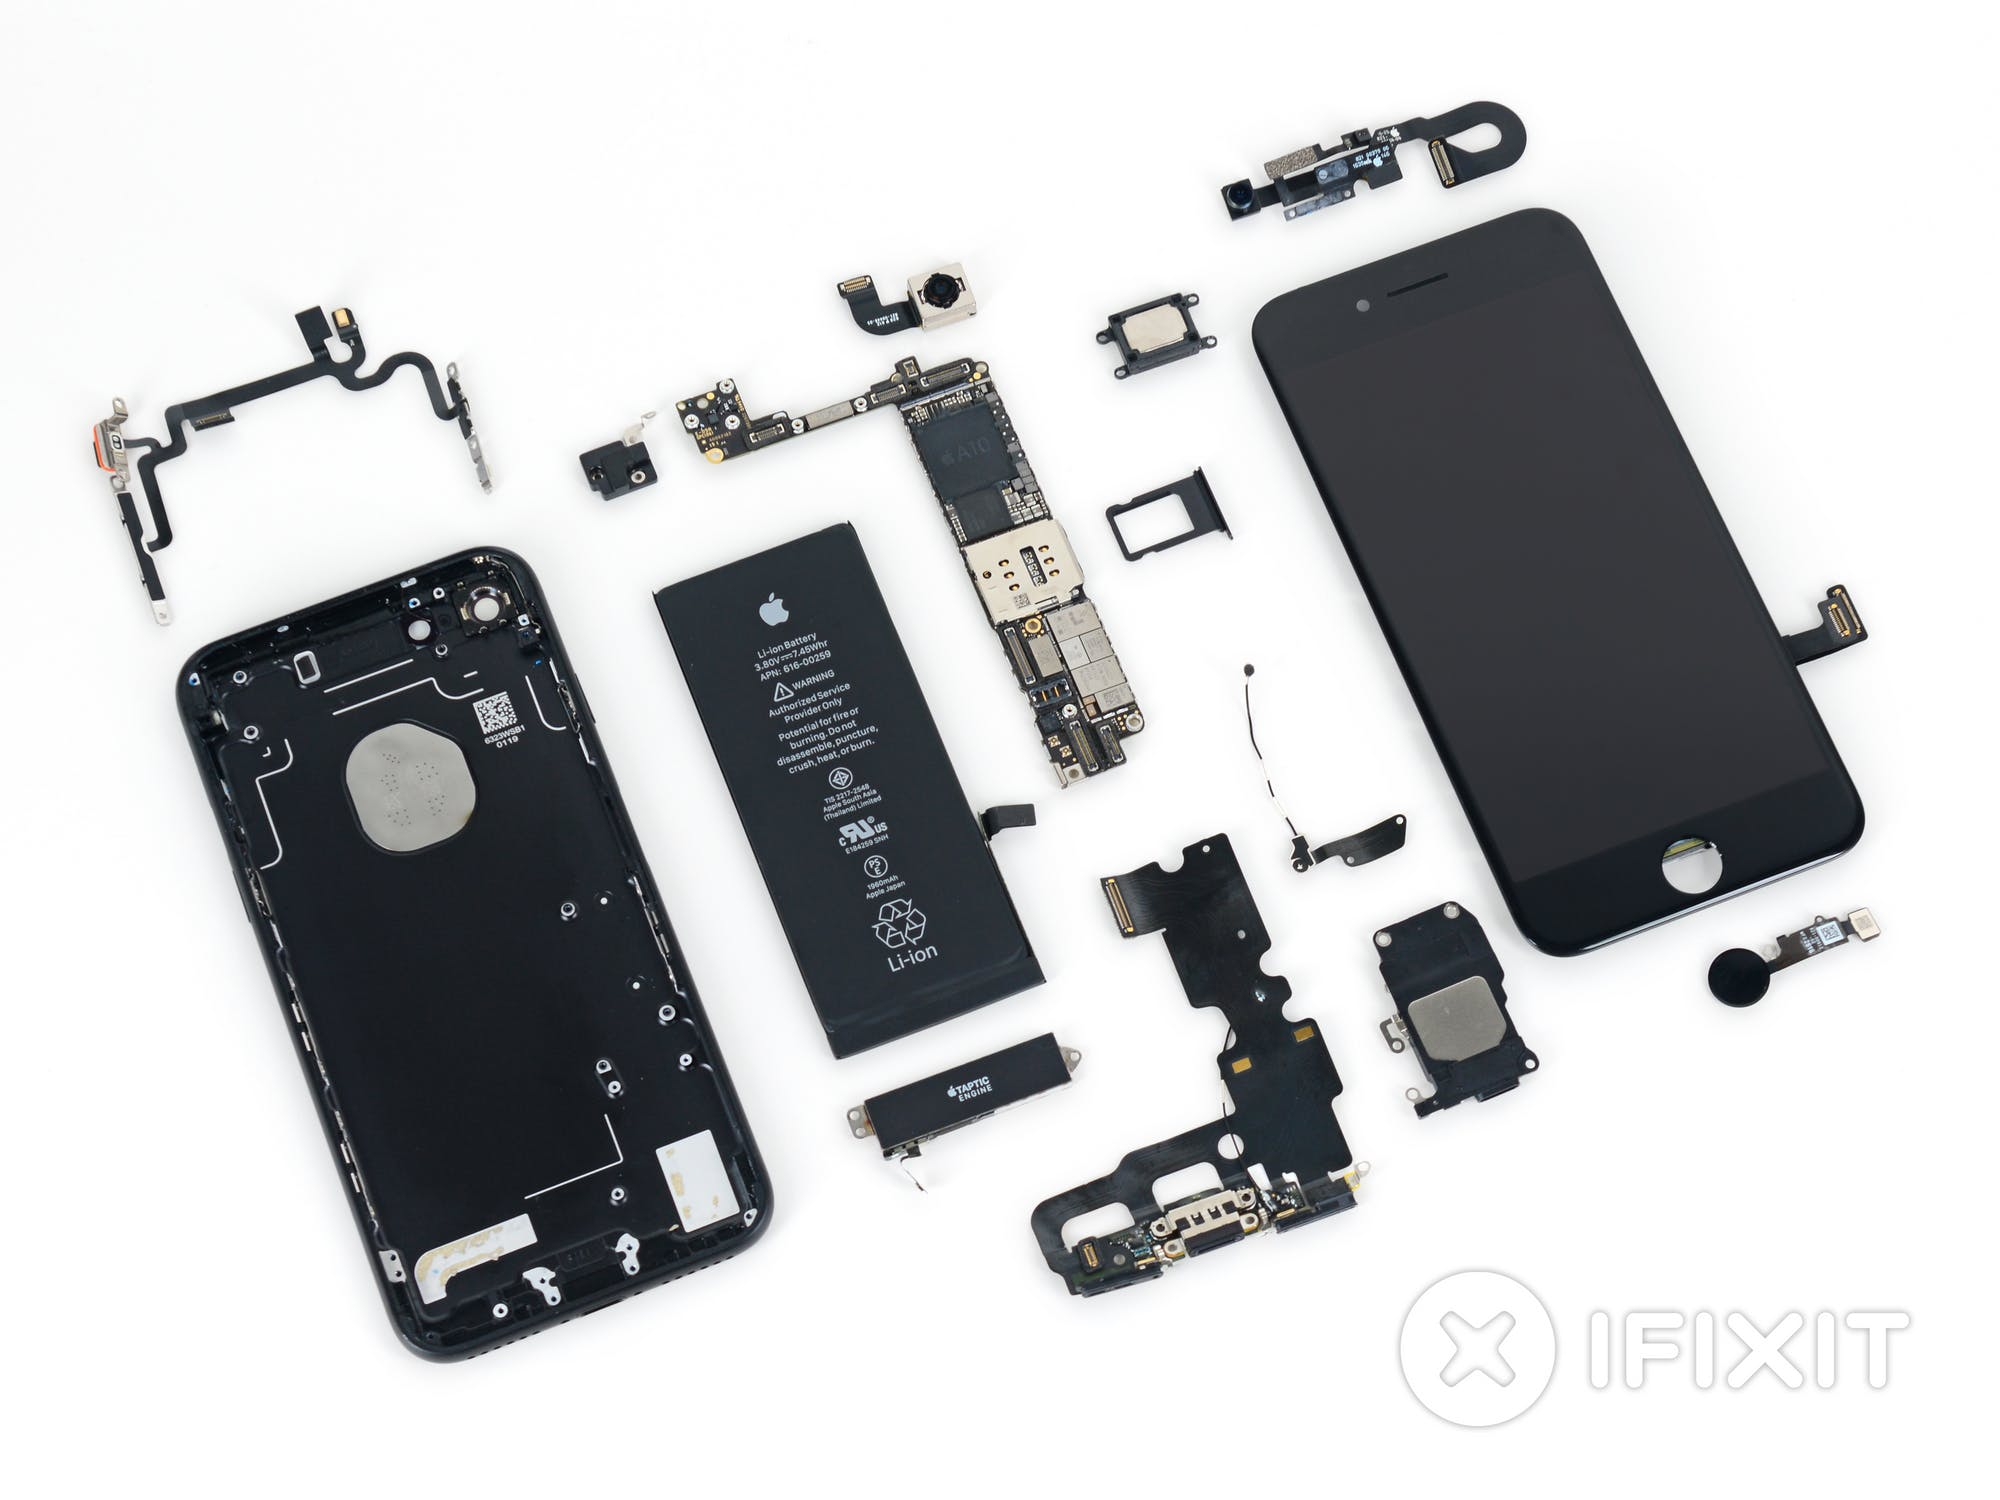 iPhone 7 teardown Source: iFixit